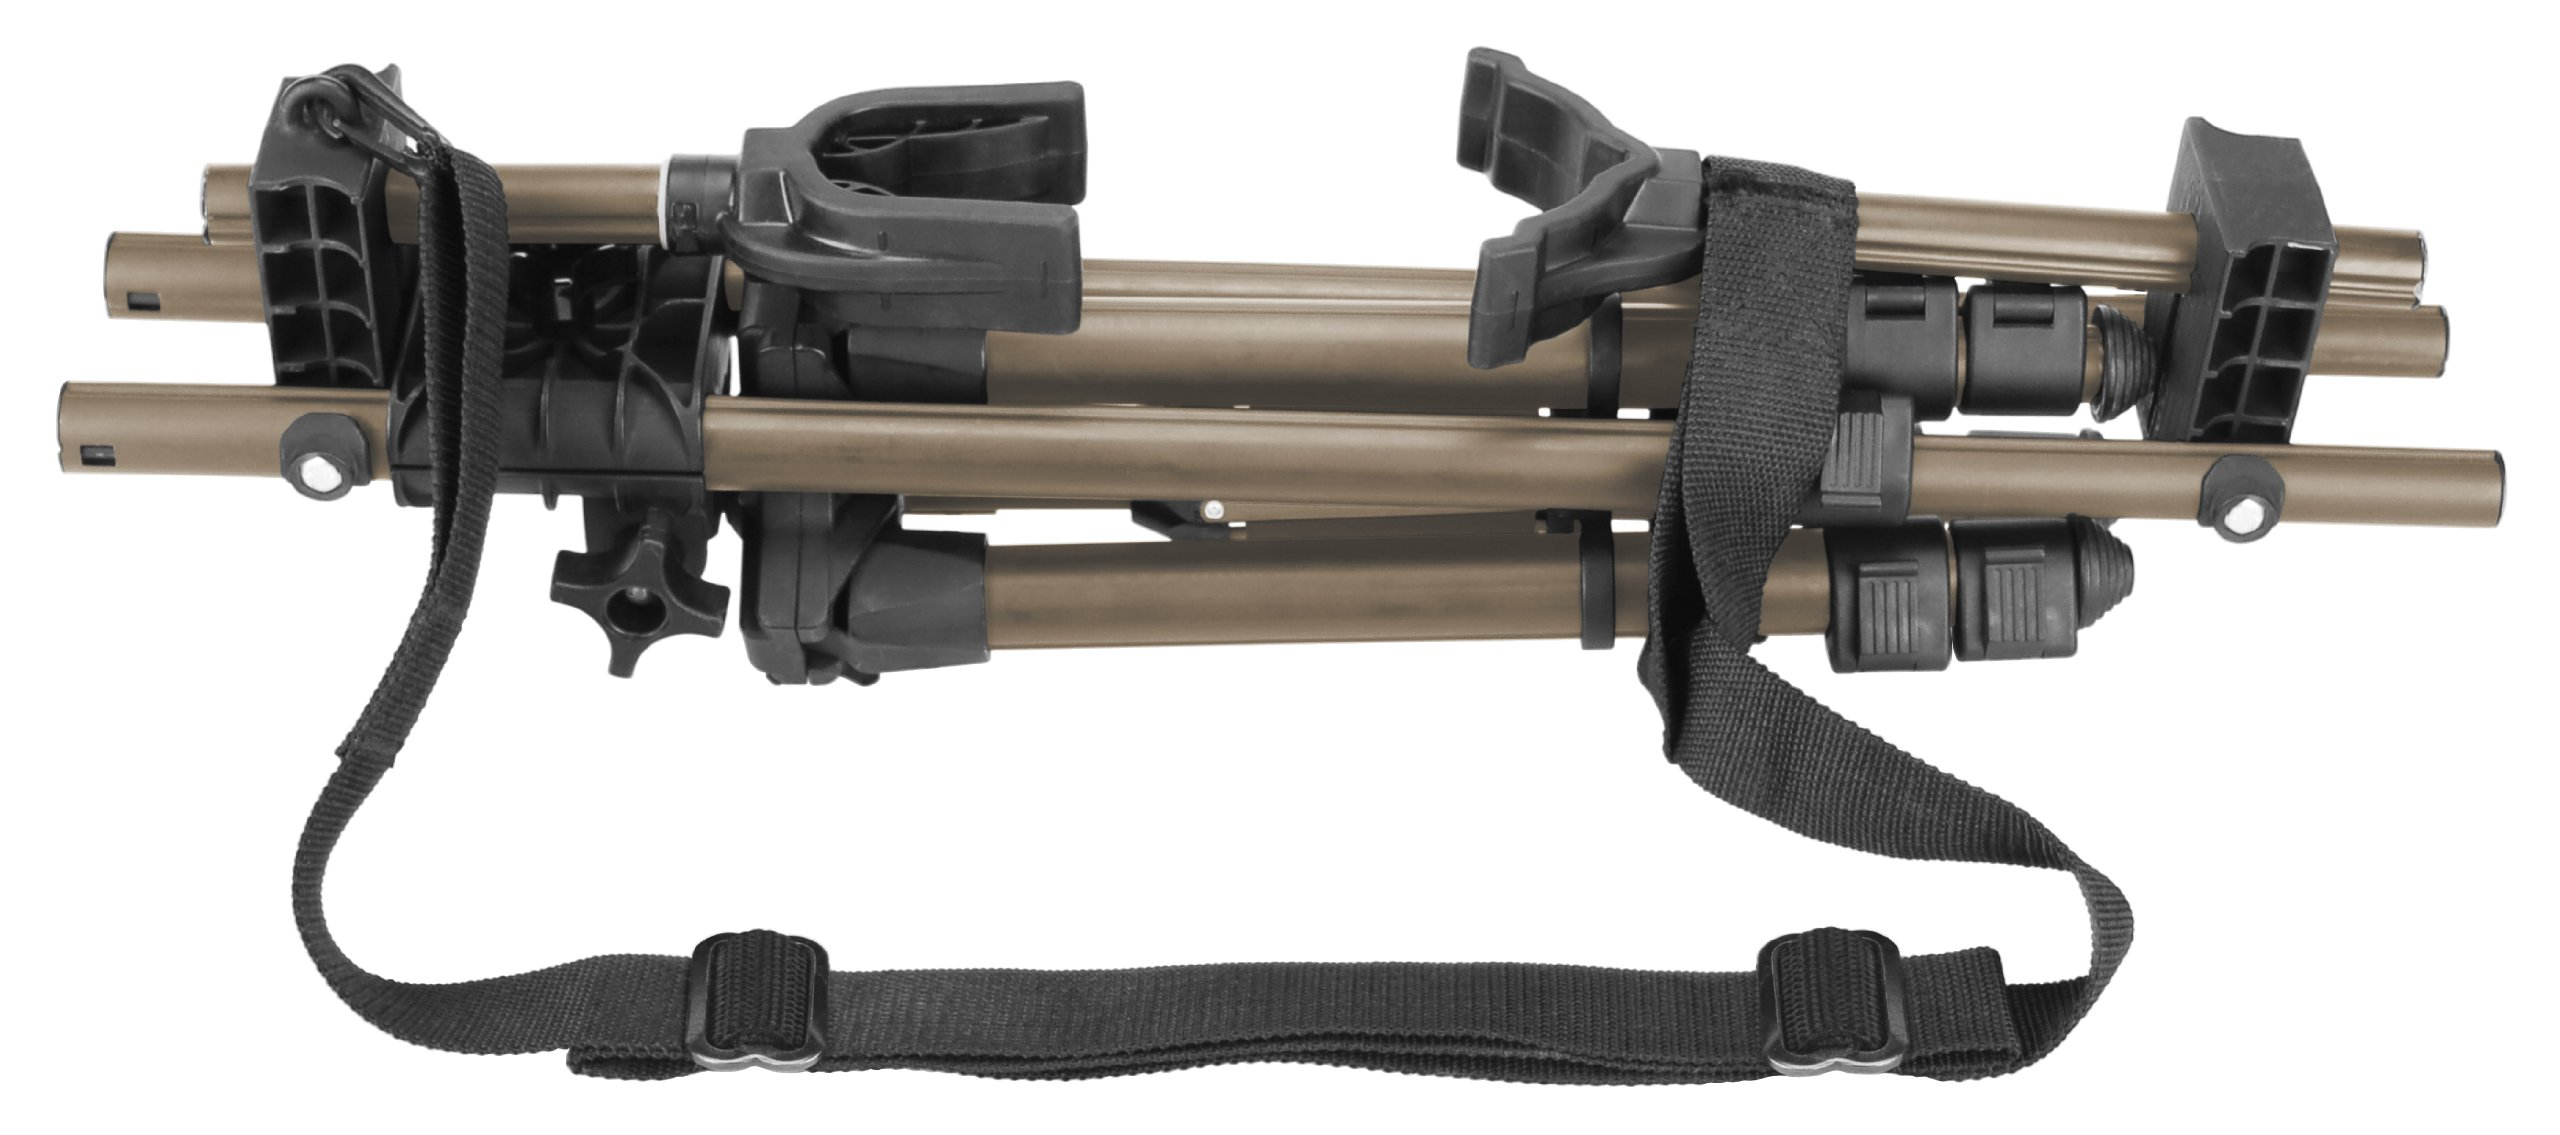 Caldwell DeadShot FieldPod Adjustable Ambidextrous Rifle Shooting Rest for Outdoor Range and Hunting by Caldwell (Image #4)